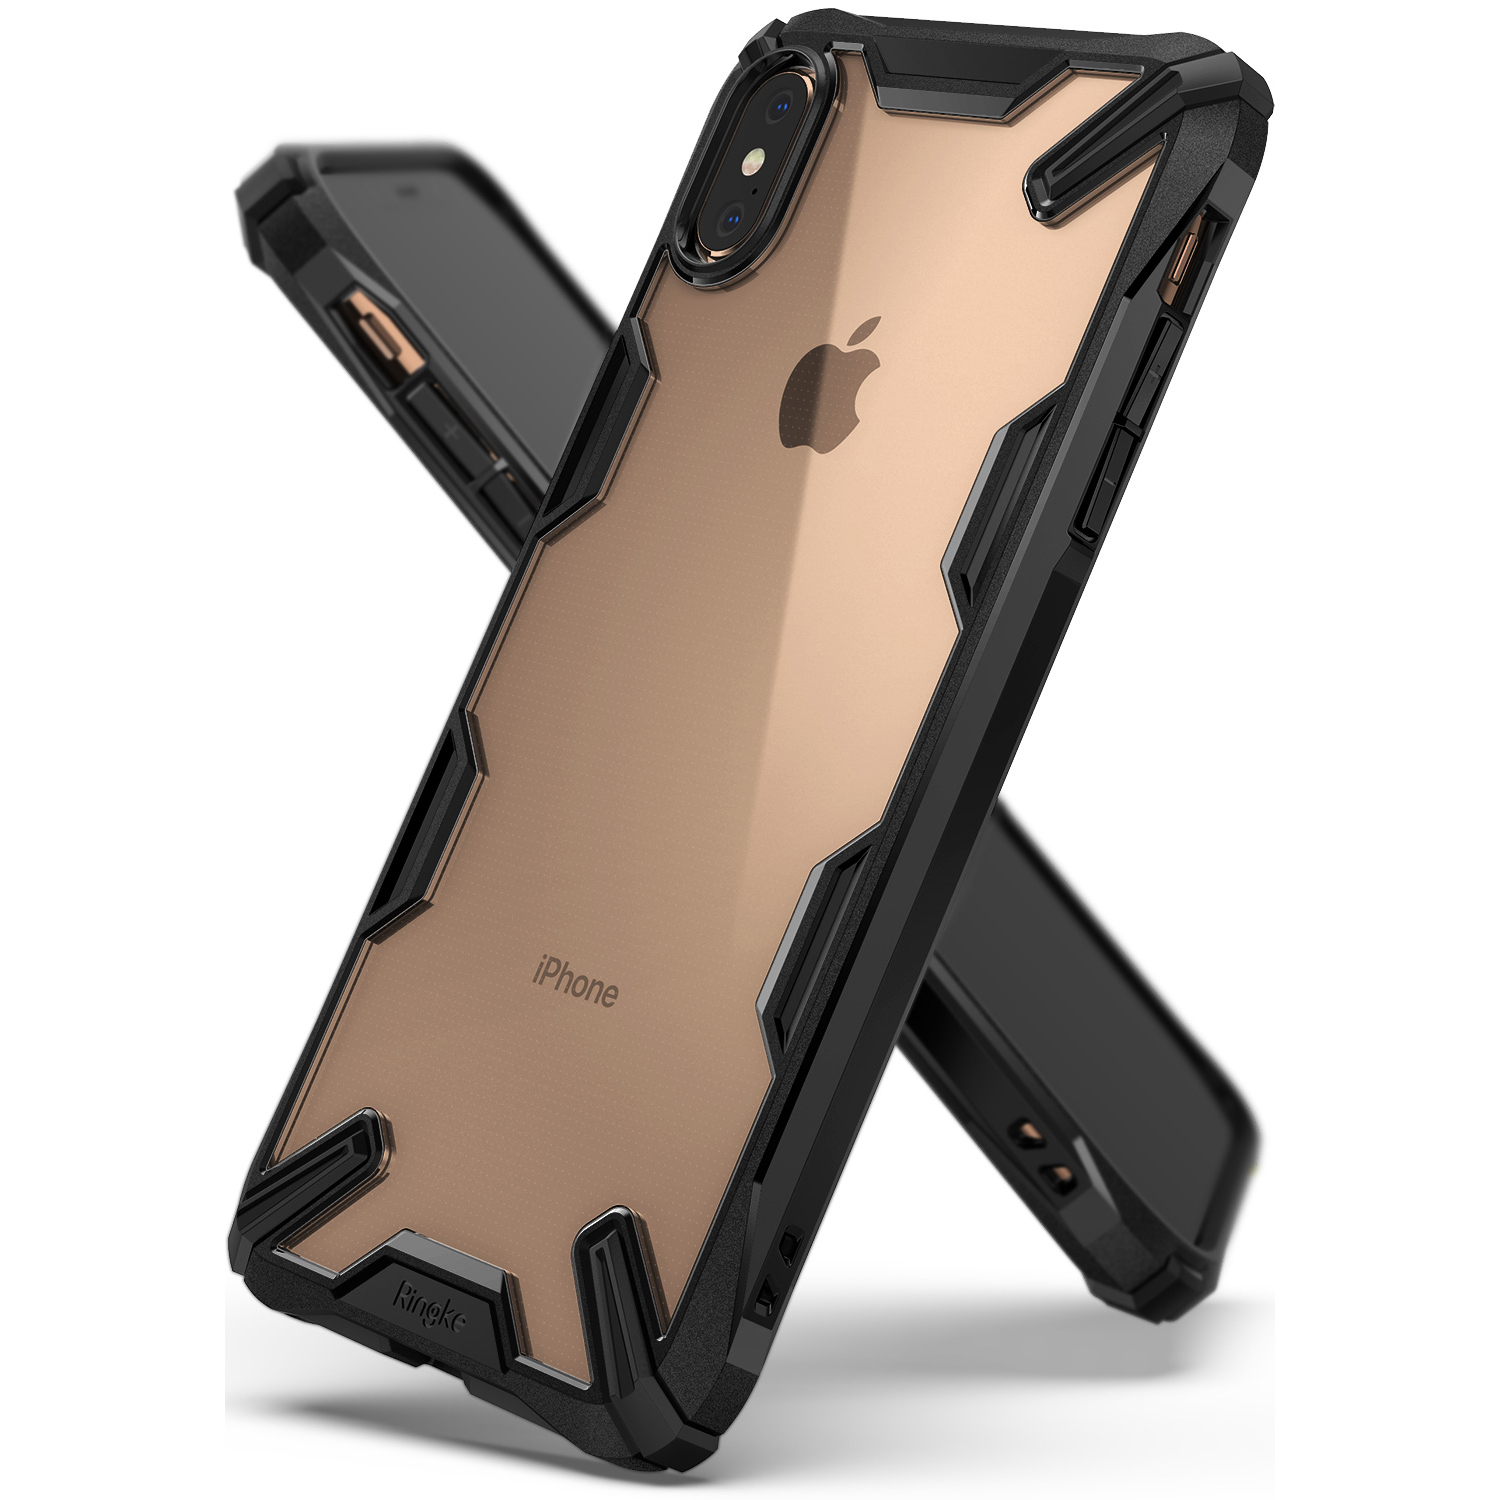 Buy Spigen Core Armor Black Soft Tpu Case For Iphone Xs Geometric Pattern Softcase Liquid Air Casing 100 Rearth Ringke Fusion X Clear Hard Back Cover Bumper Hybrid